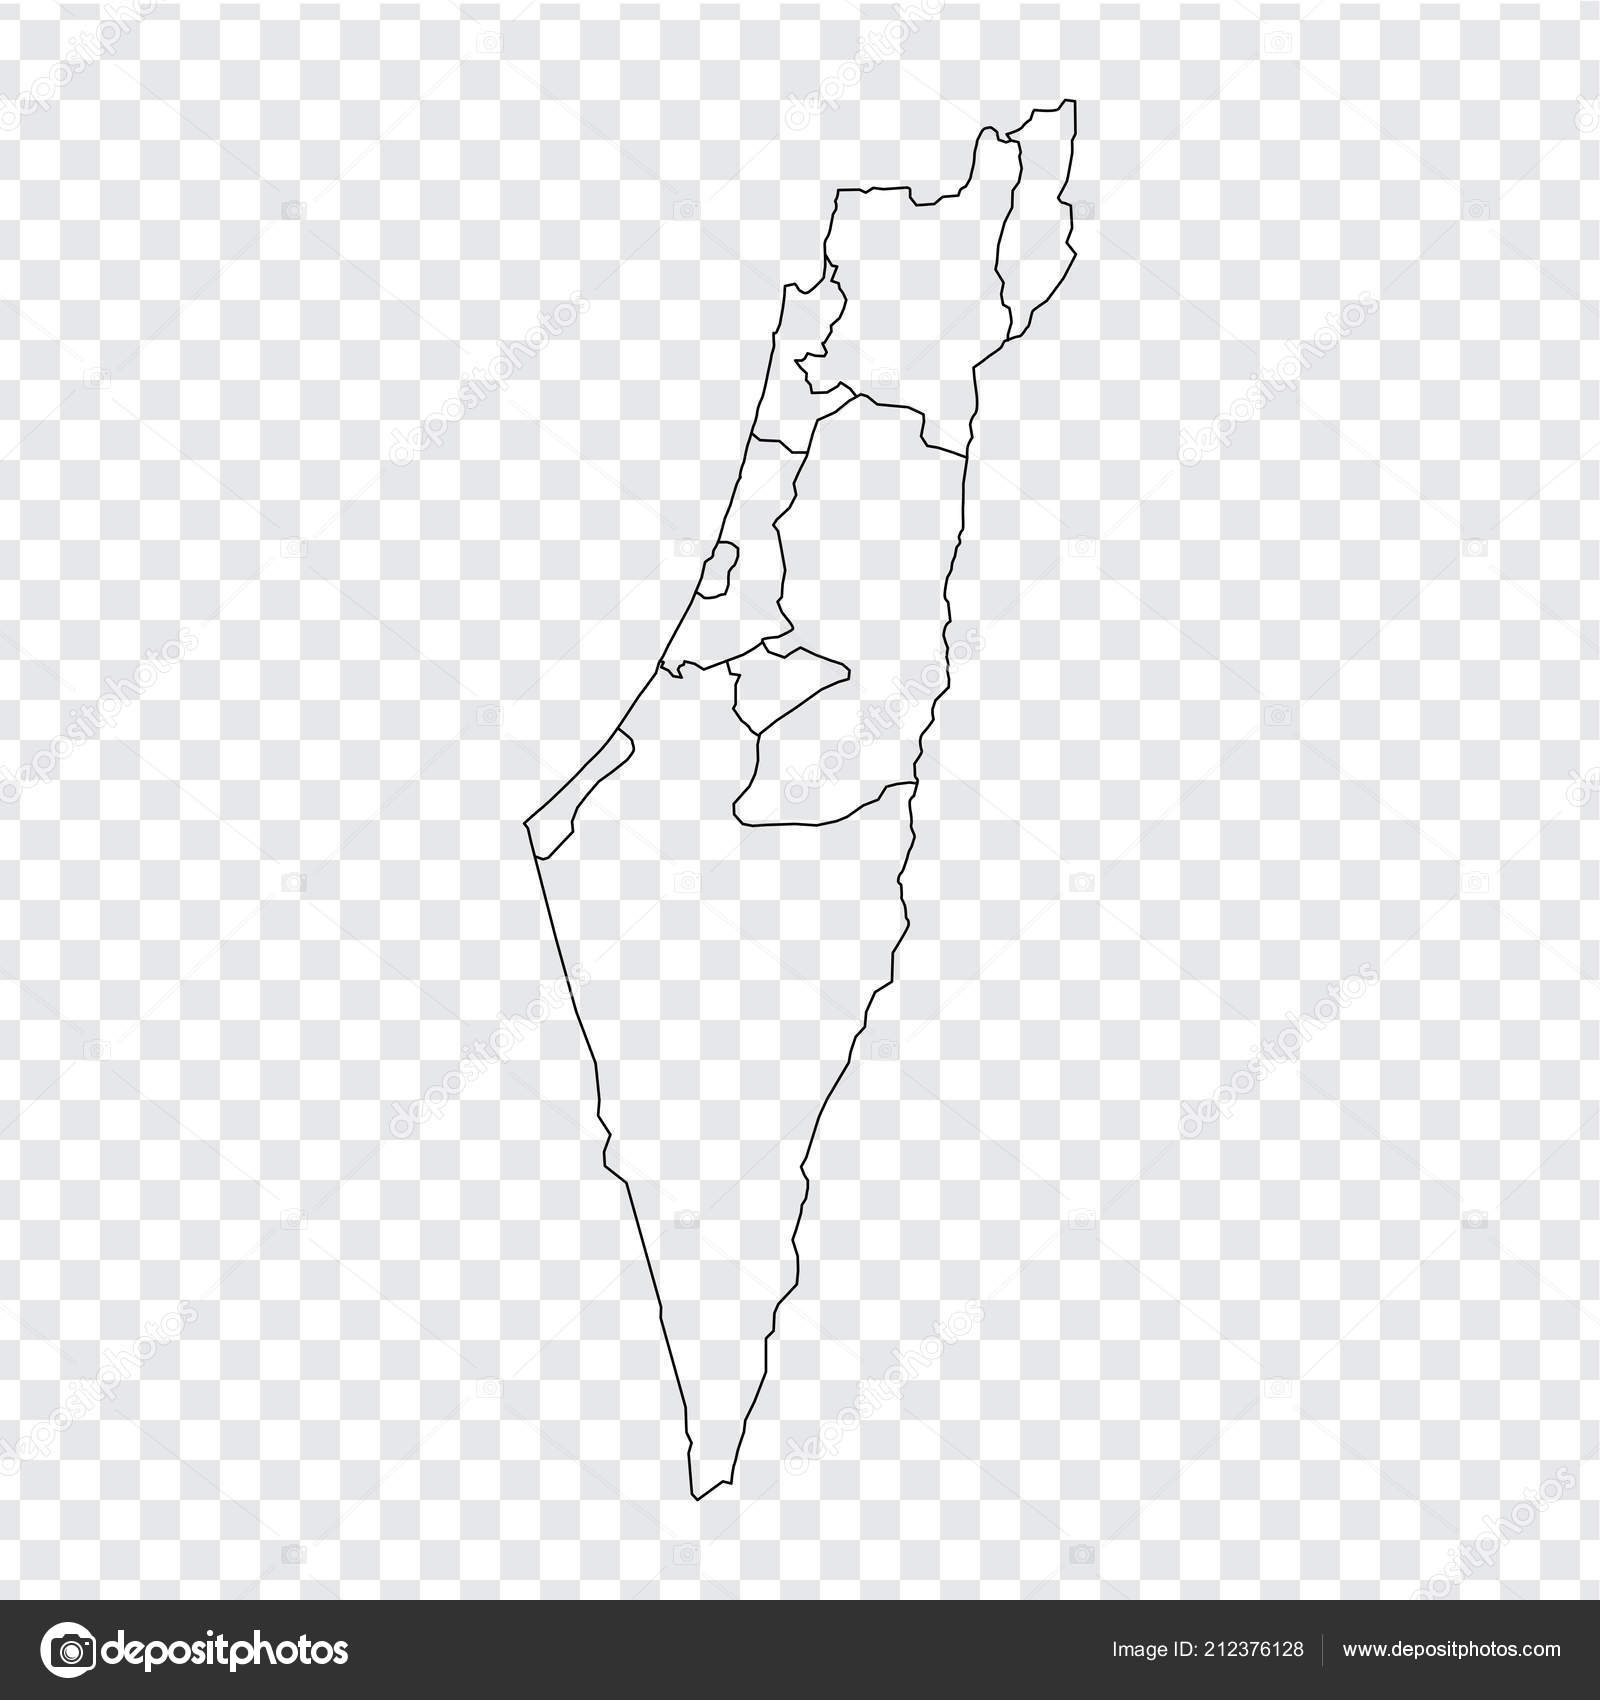 Picture of: Israel Map Blank Blank Map Israel High Quality Map Israel Provinces Transparent Background Stock Vector C Karinanh 212376128